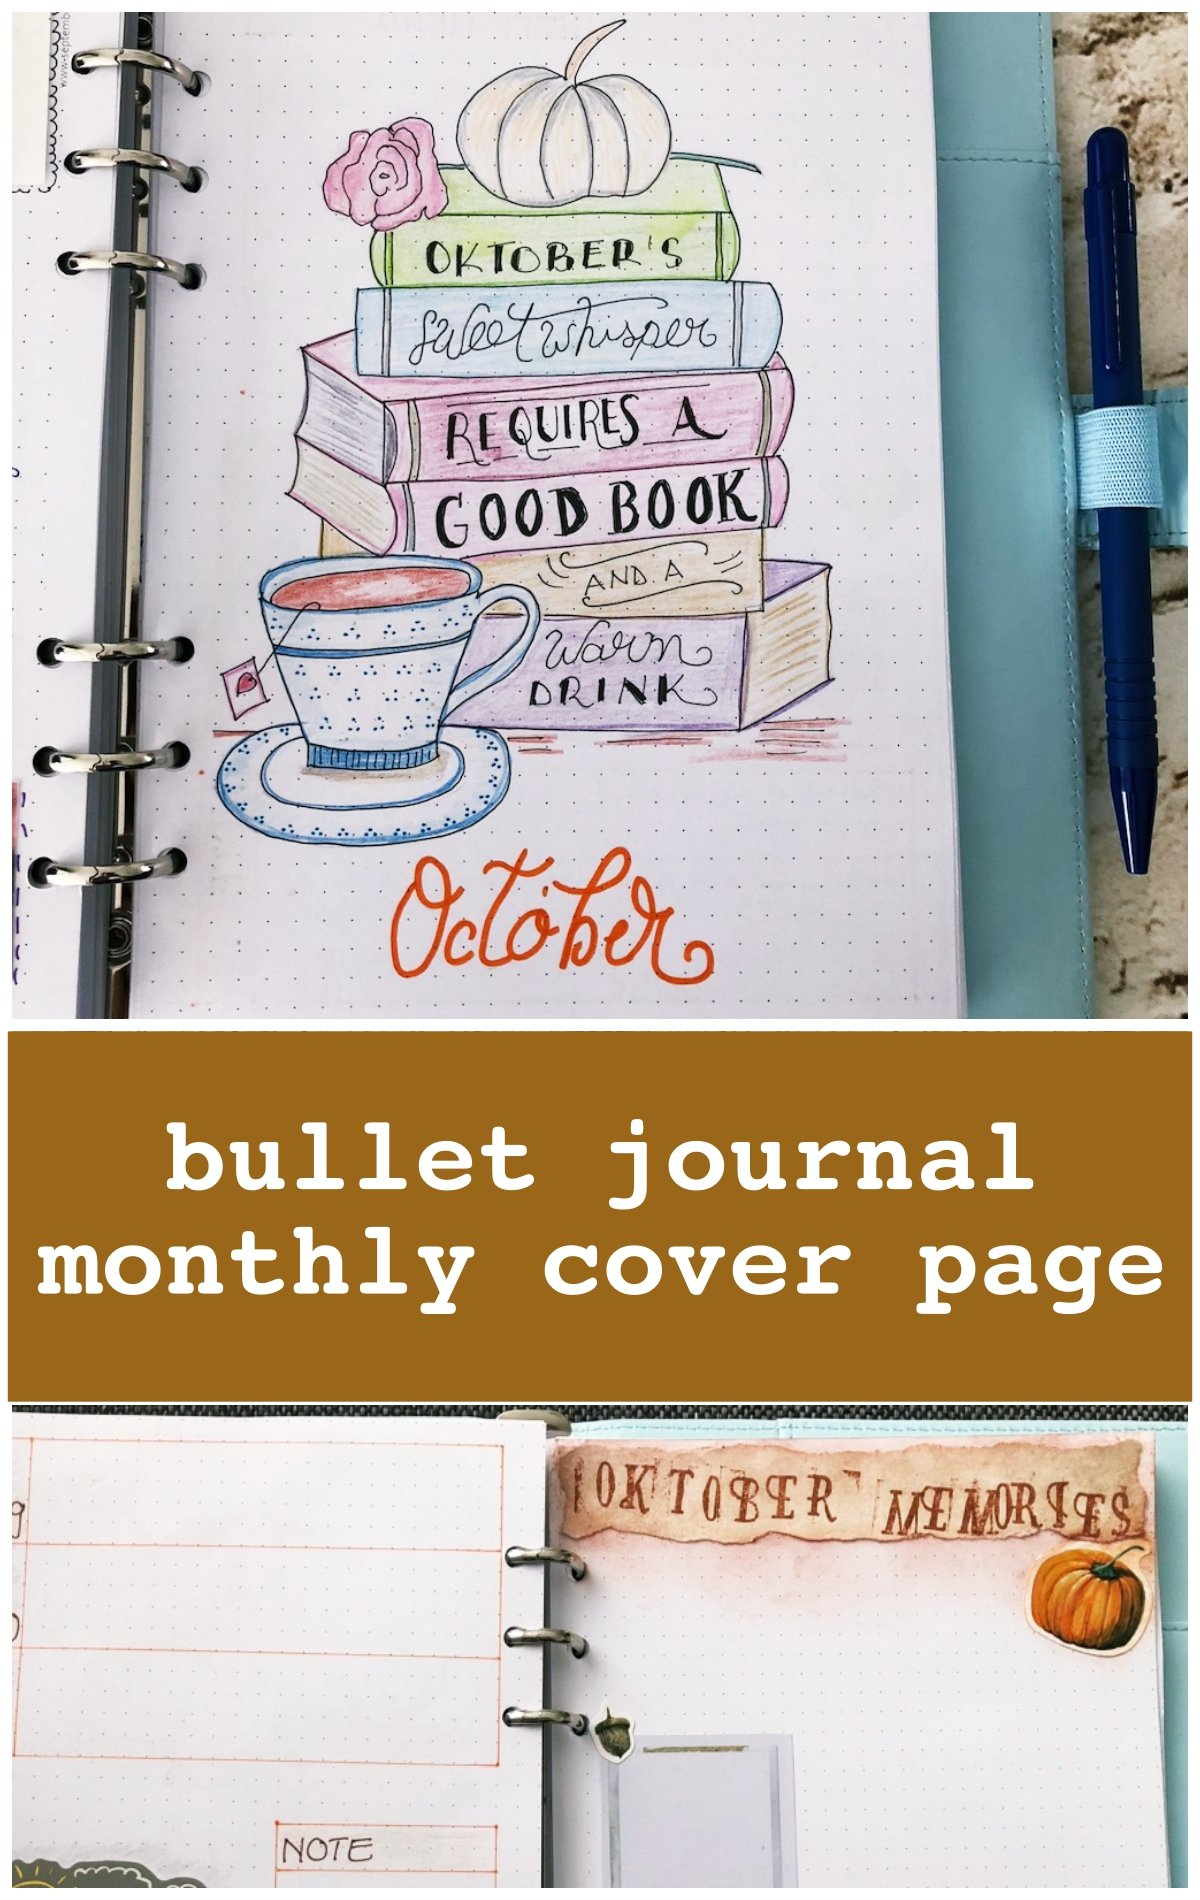 Bullet journal monthly cover October - itstartswithacoffee.com #bulletjournal #bulletjournaling #monthlyplanner #monthlycover #coverpages #October #bujo